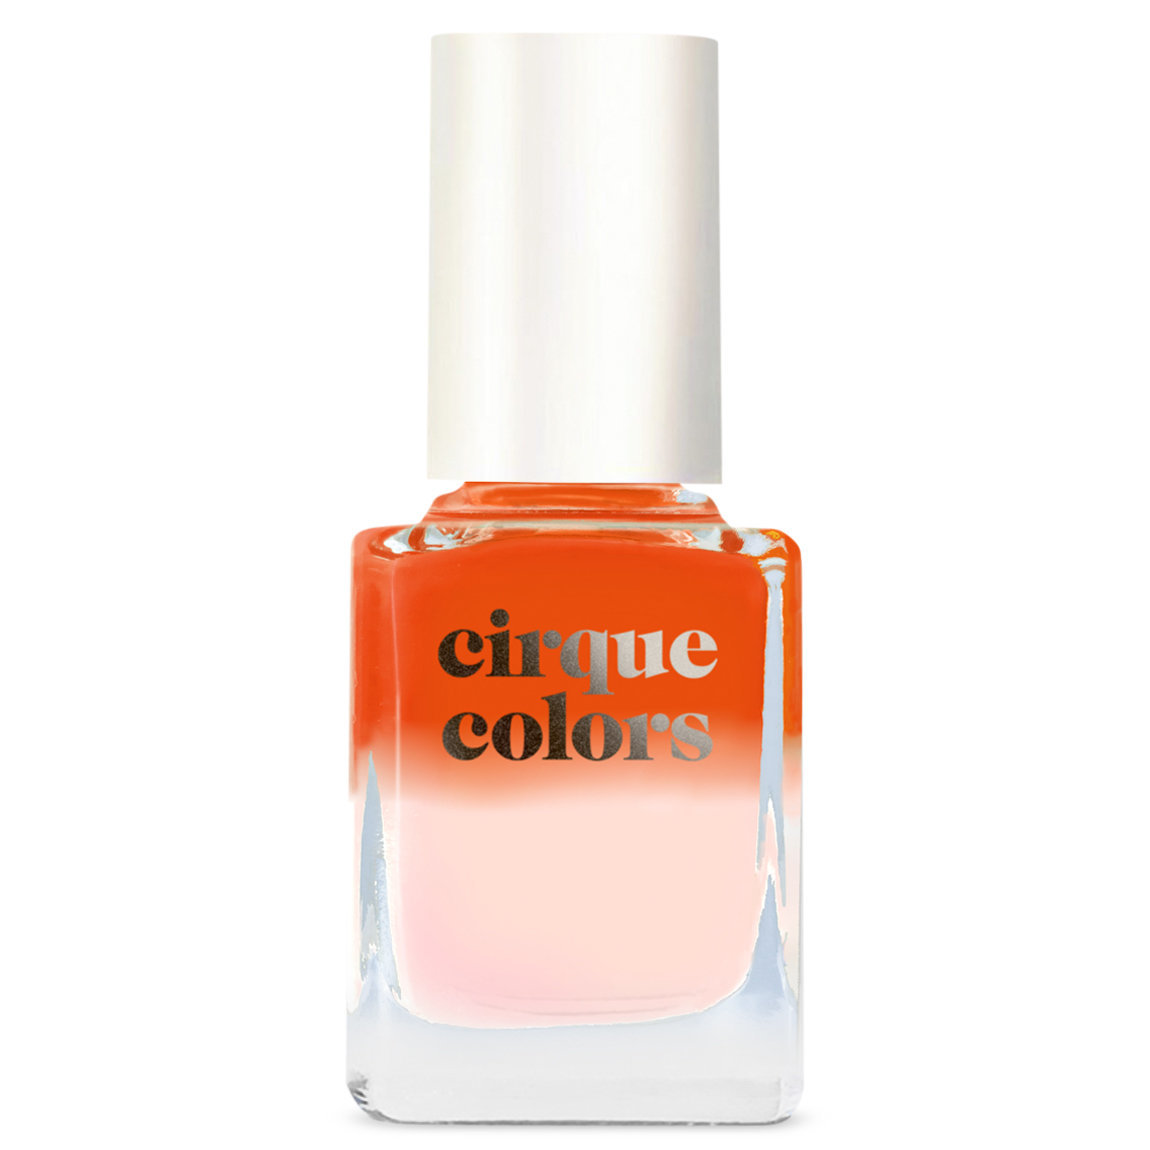 Cirque Colors Thermal Nail Polish Cast a Spell alternative view 1 - product swatch.